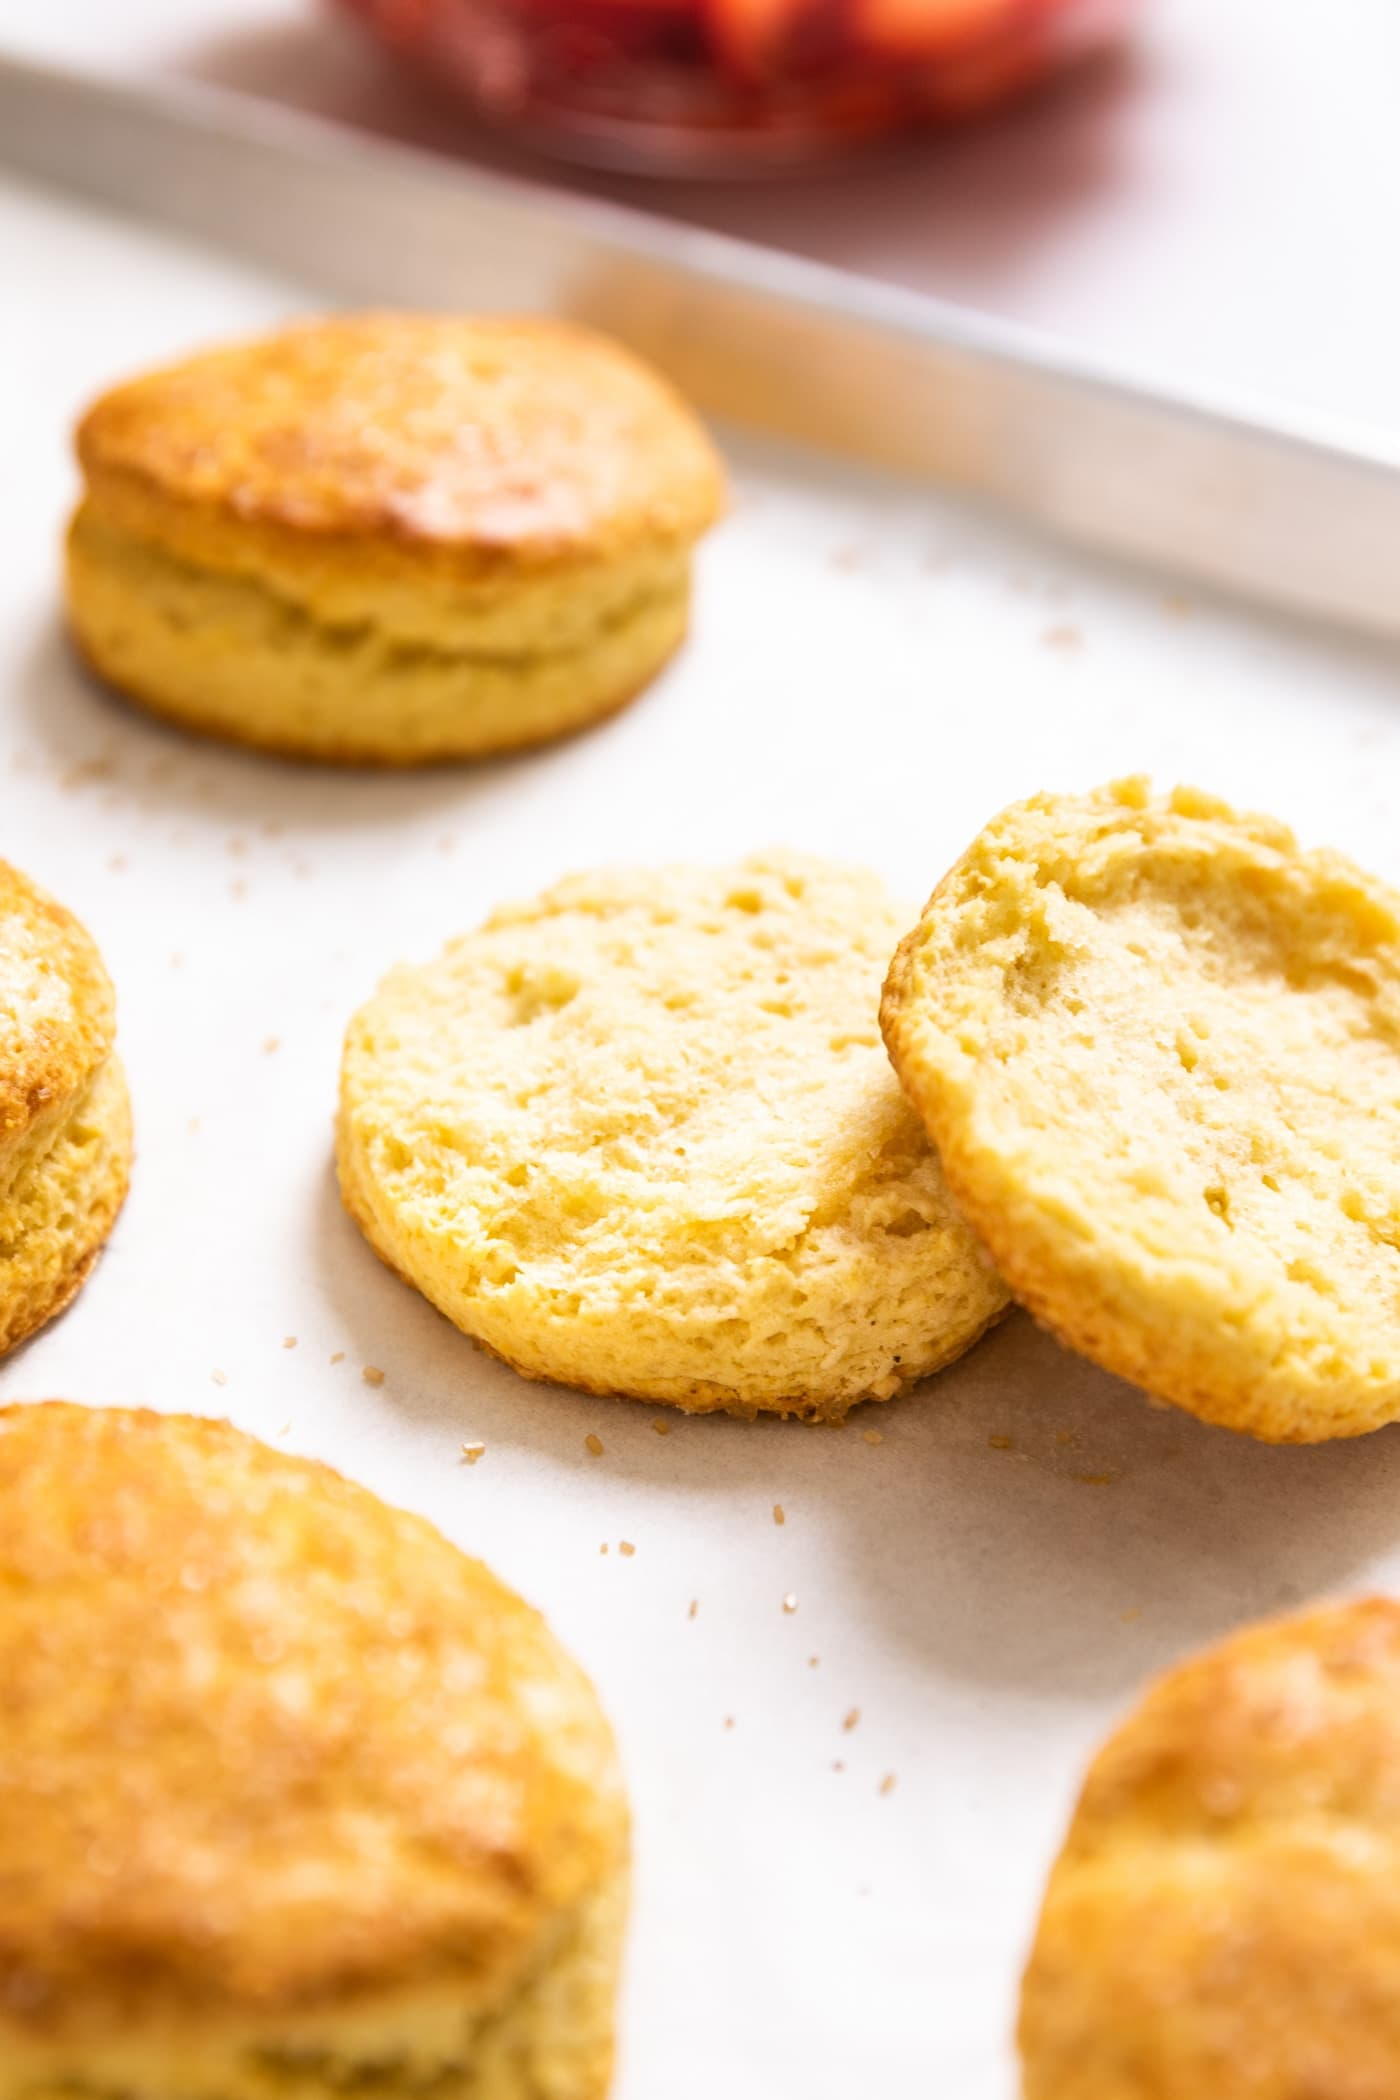 Sliced biscuit with both halves sitting close to each on baking dish with other unsliced biscuits around